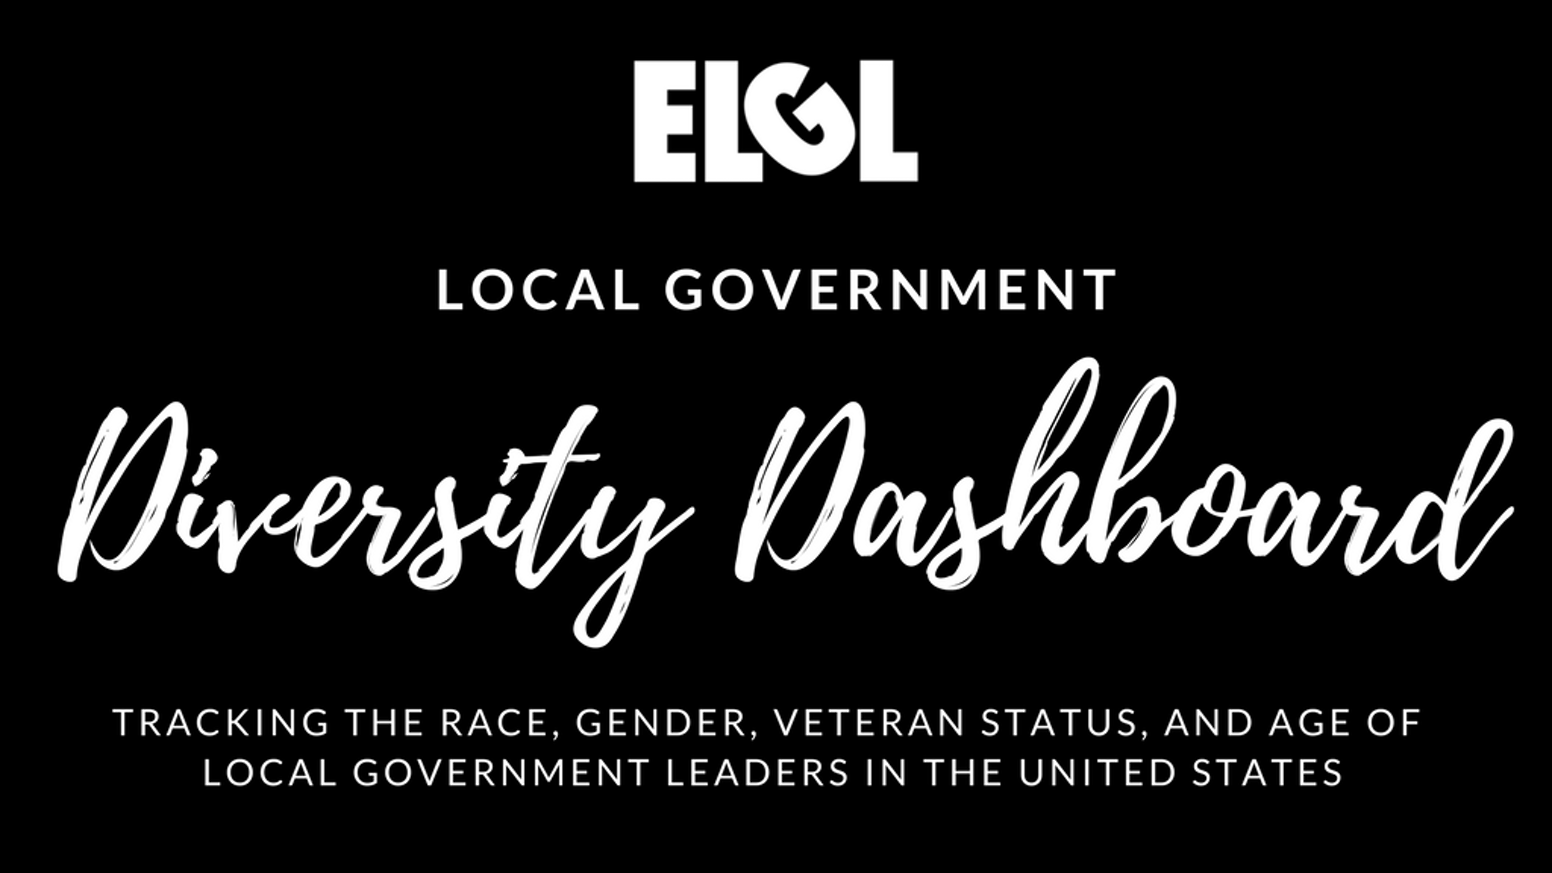 Collects quality data about the race, gender, veteran status, & age of all local government CAOs and ACAOs in the United States.